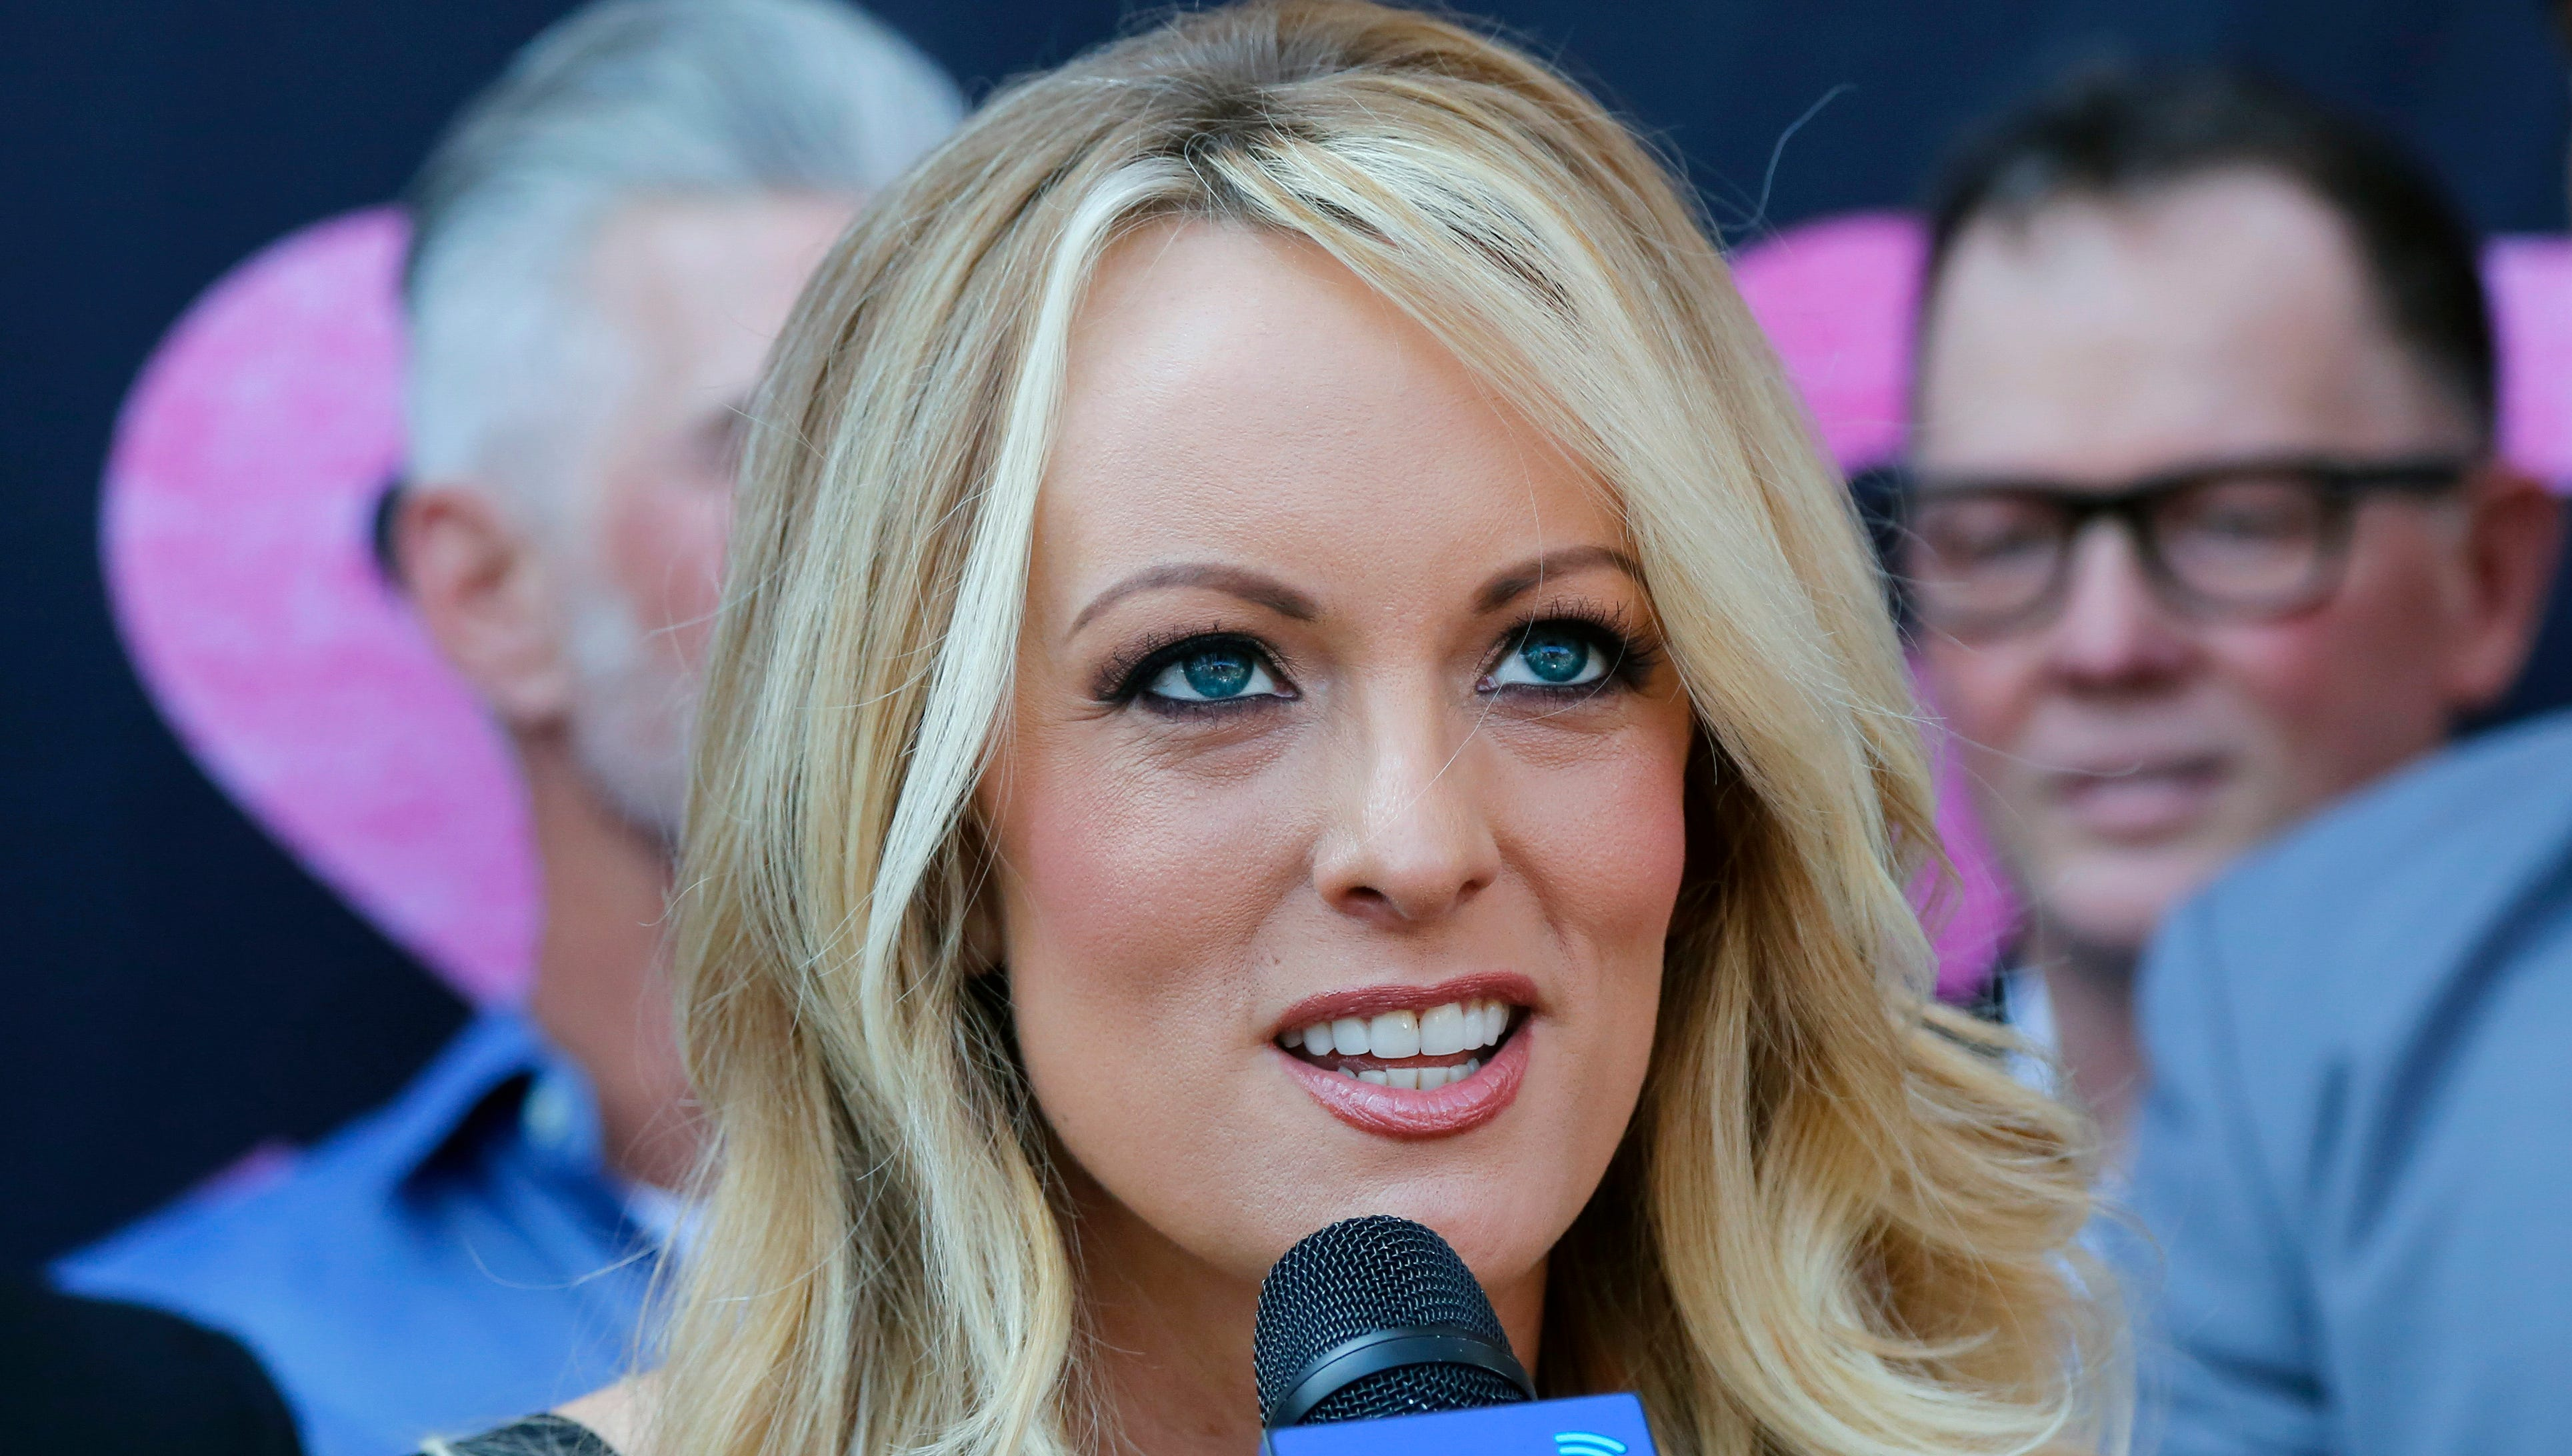 Stormy Daniels, the adult film actress and nemesis of U.S. President Donald Trump, will make several performances next month at the Trophy Club in Greenville, according to the club's owner.